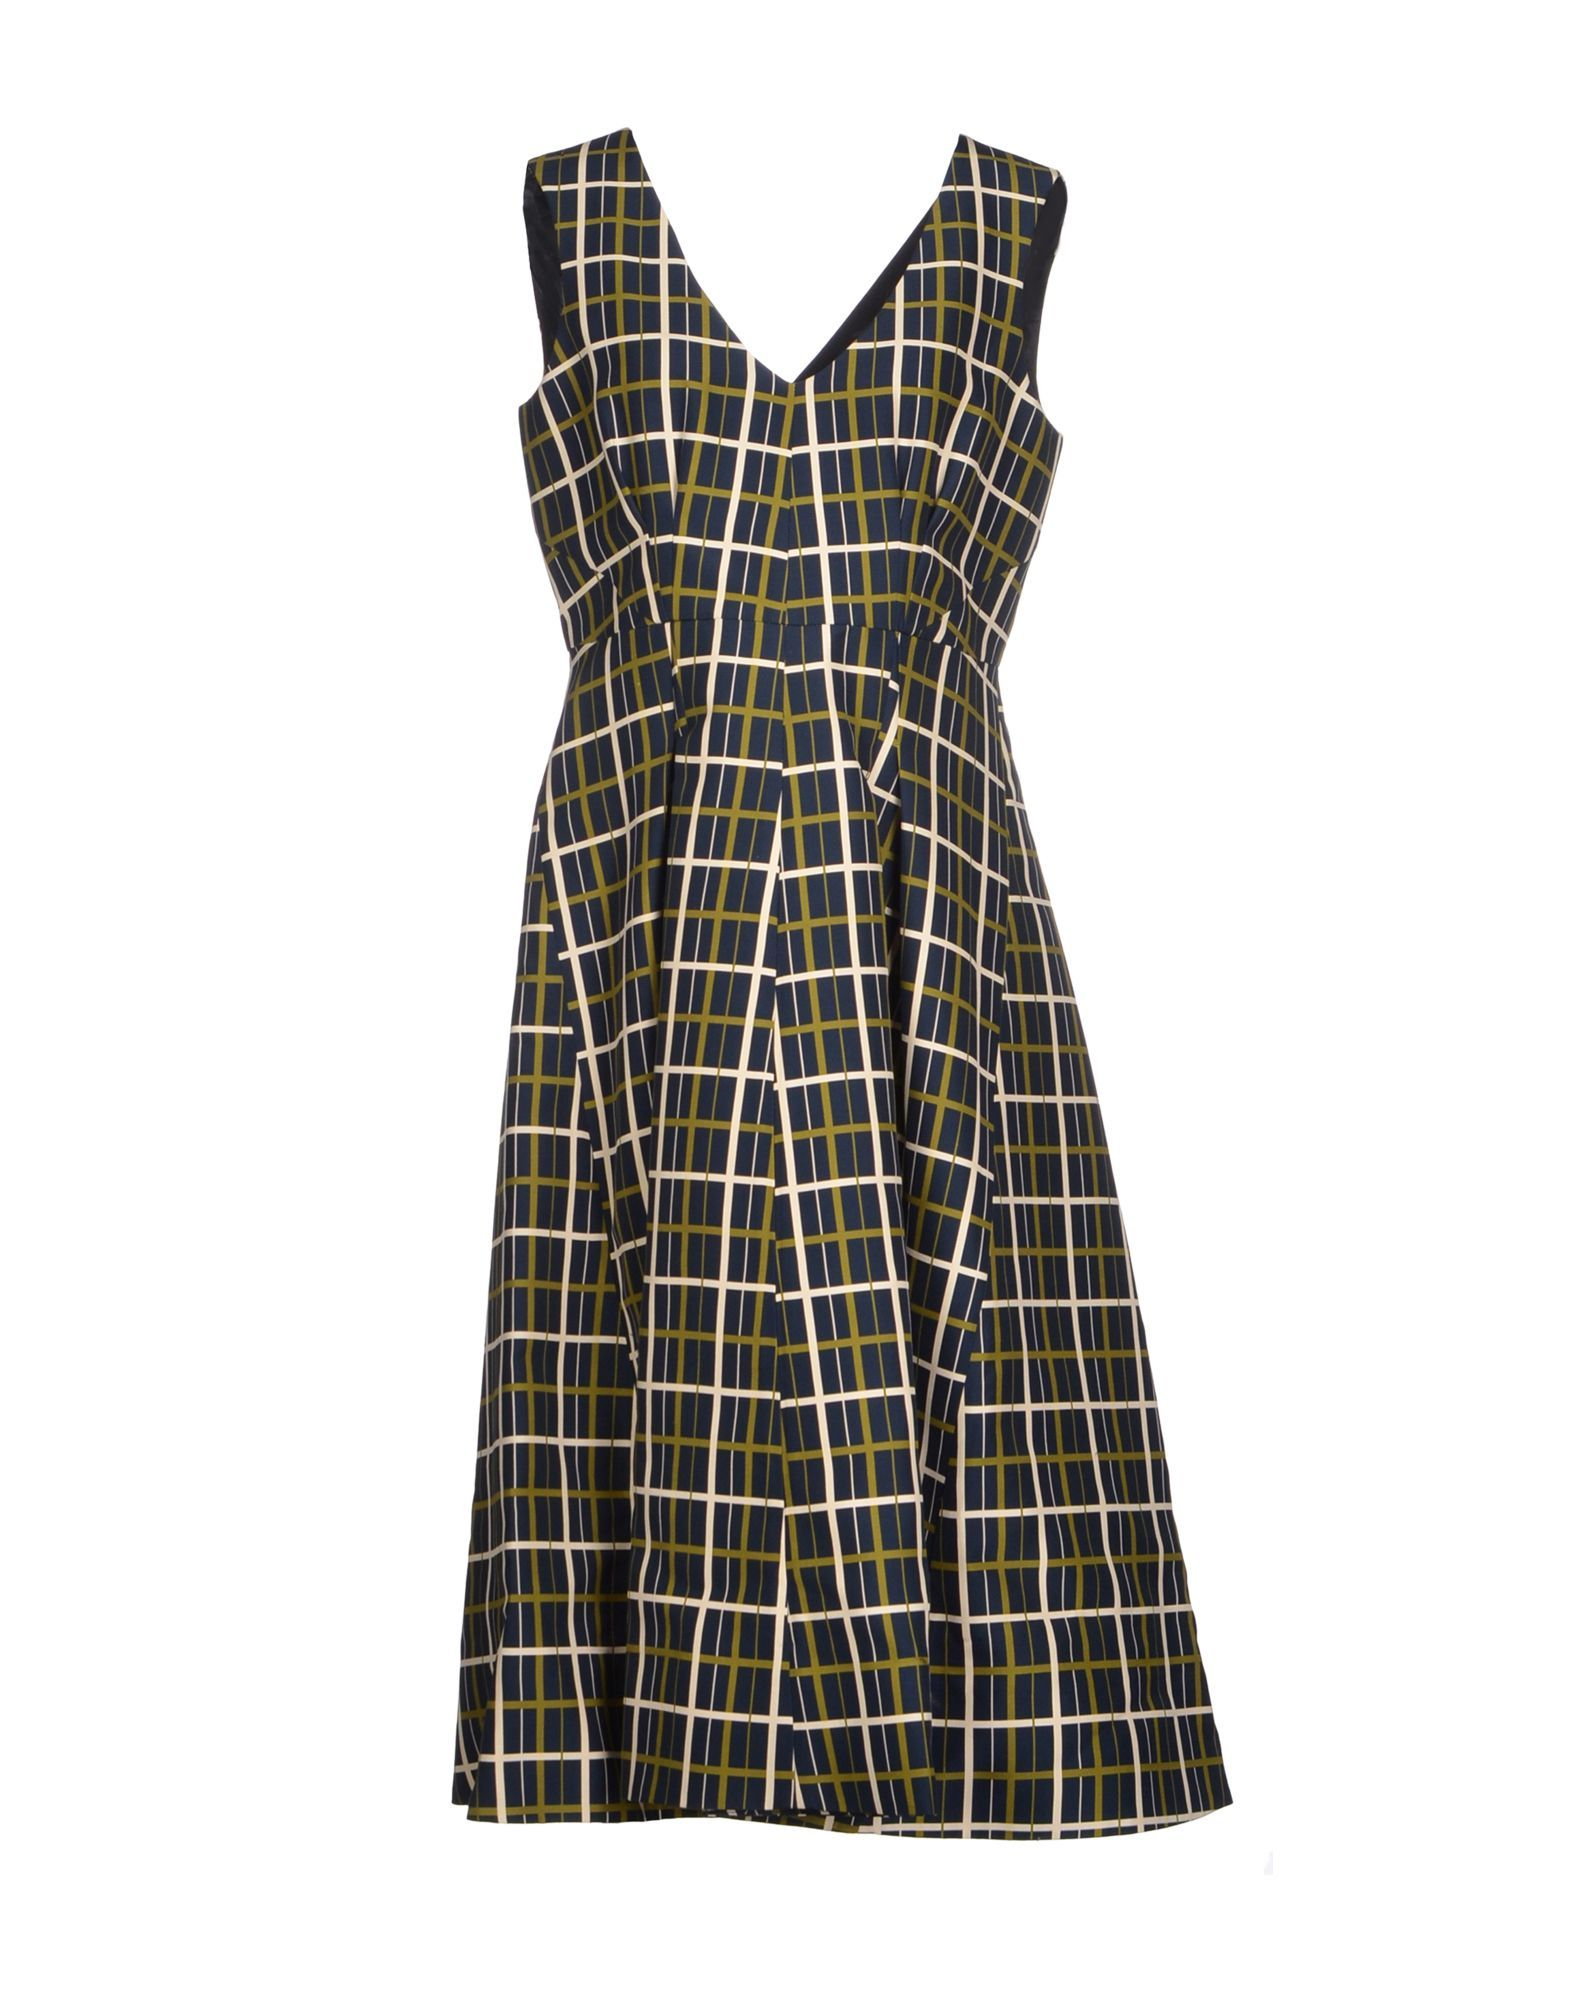 Shop this MARNI dress here > http://yoox.ly/1DeOK4c